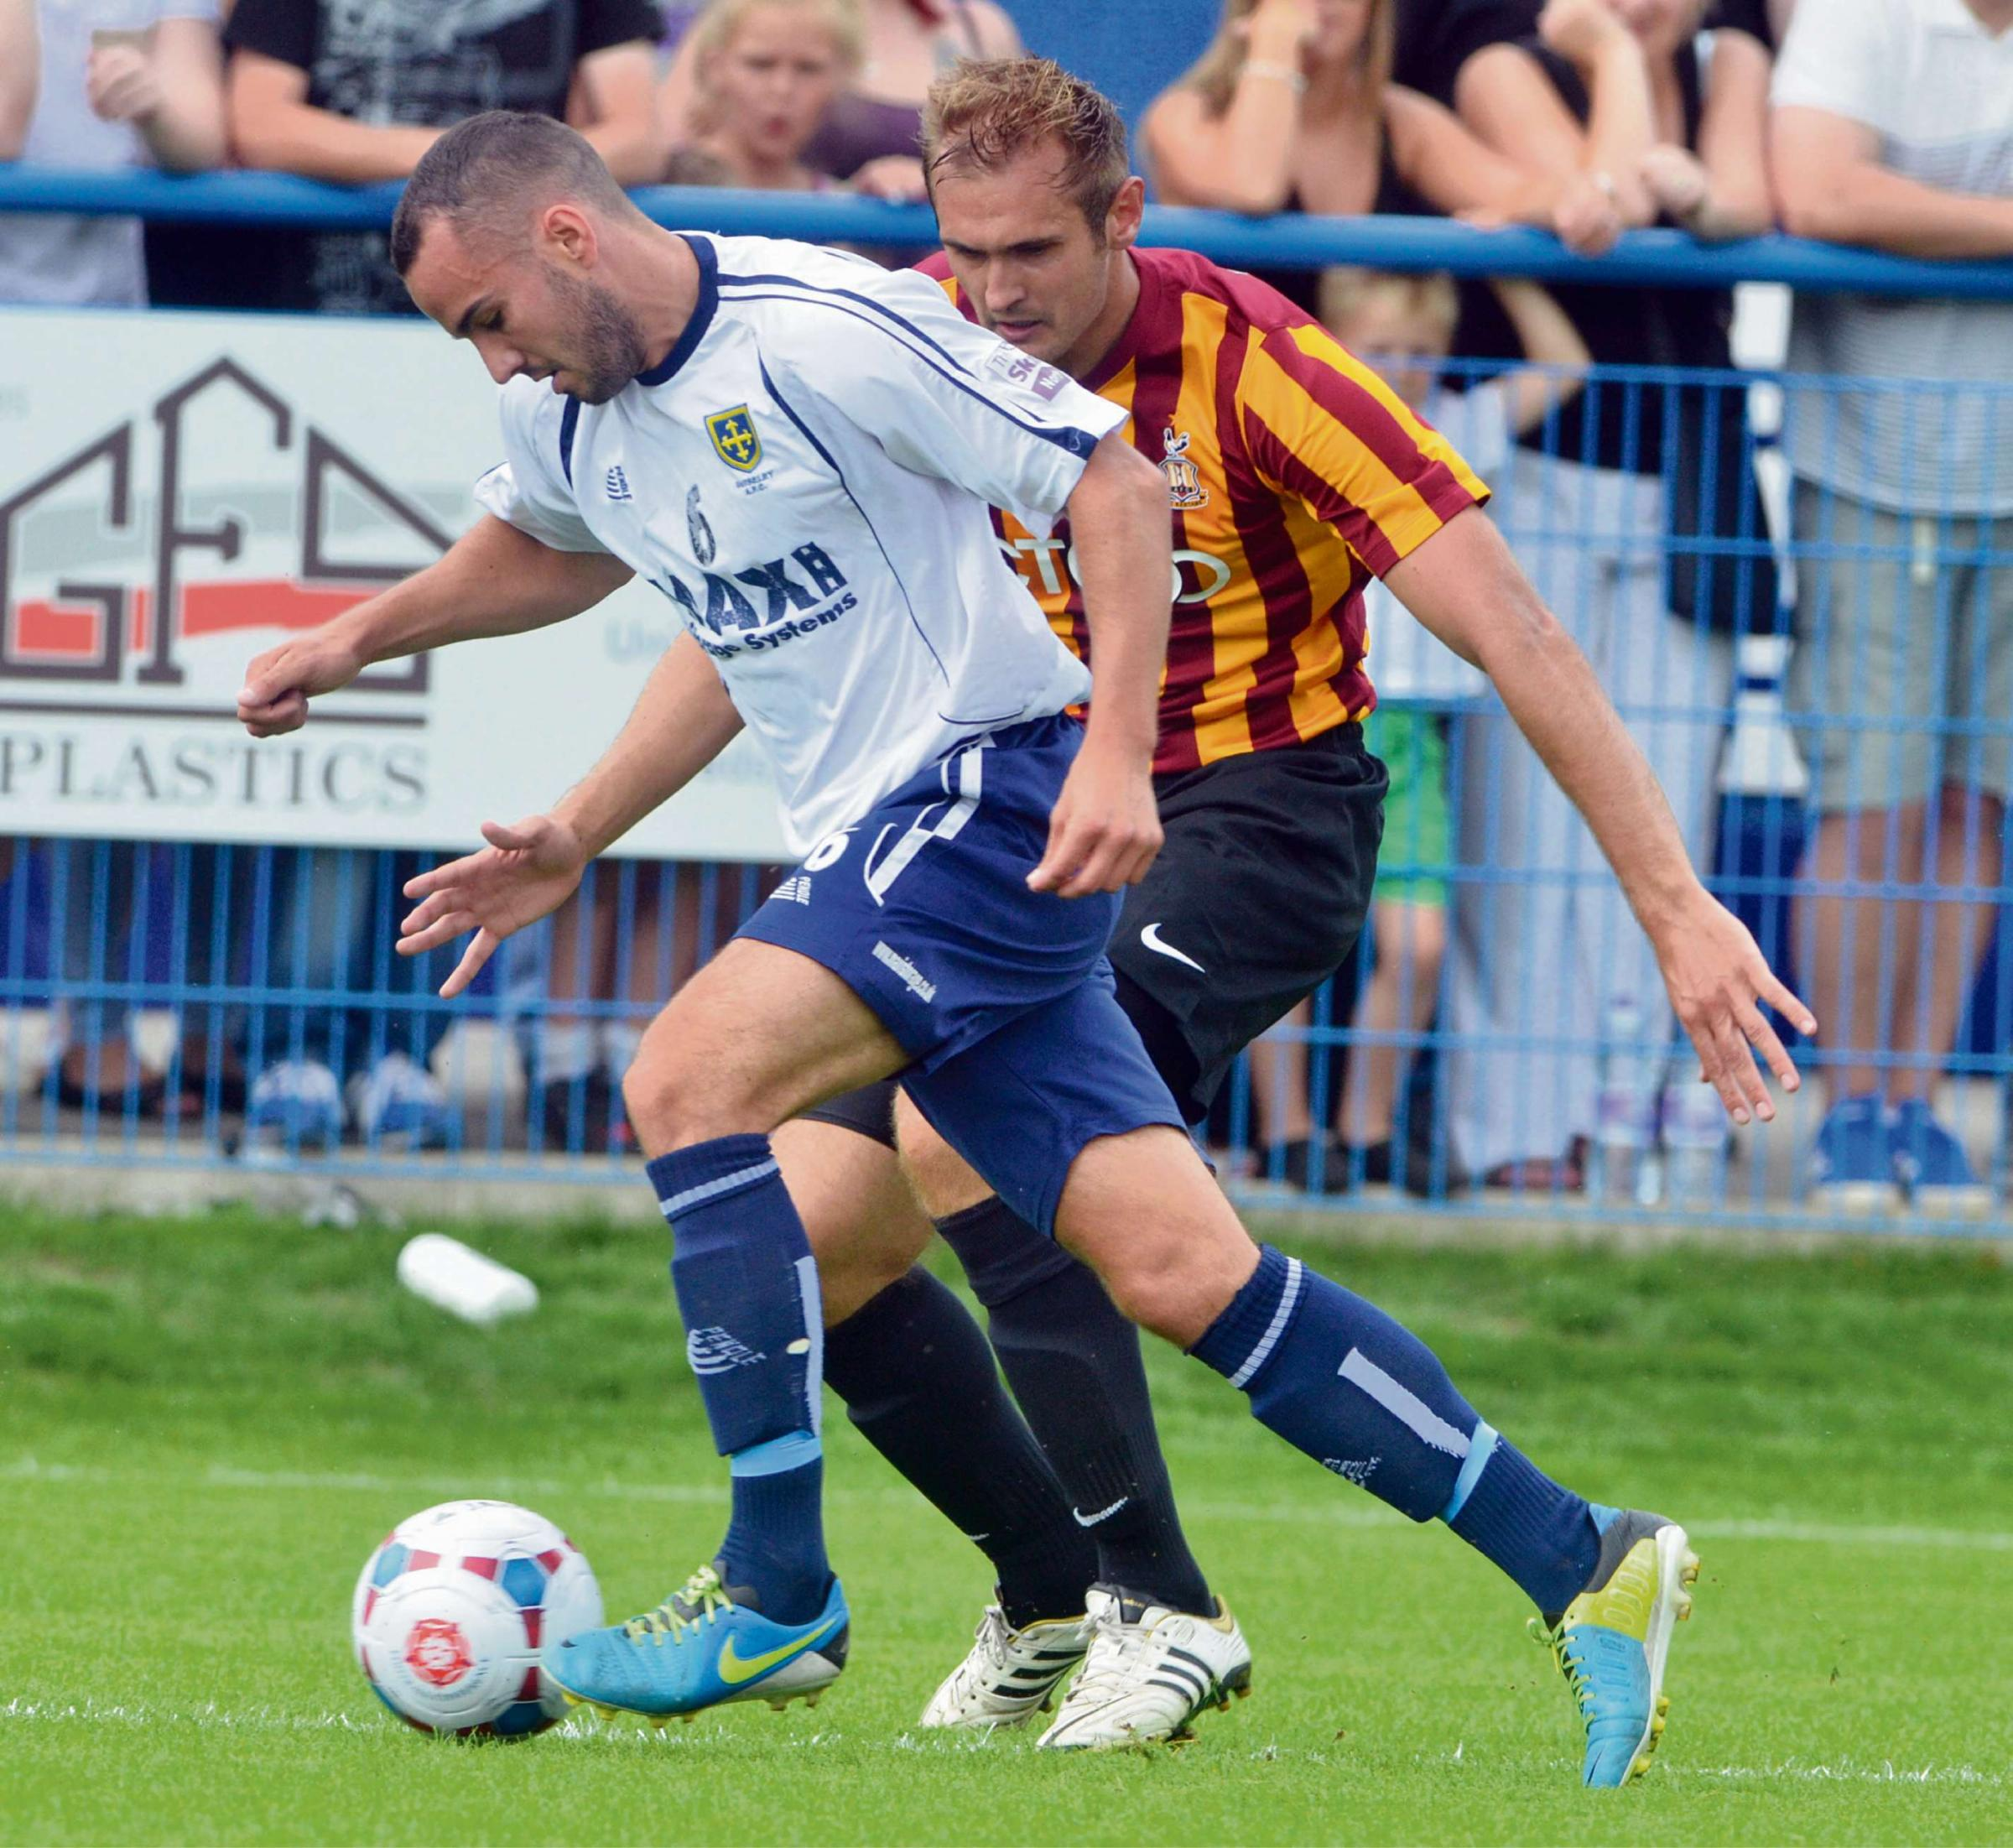 James Hanson keen to play his part in changing face of Bradford City